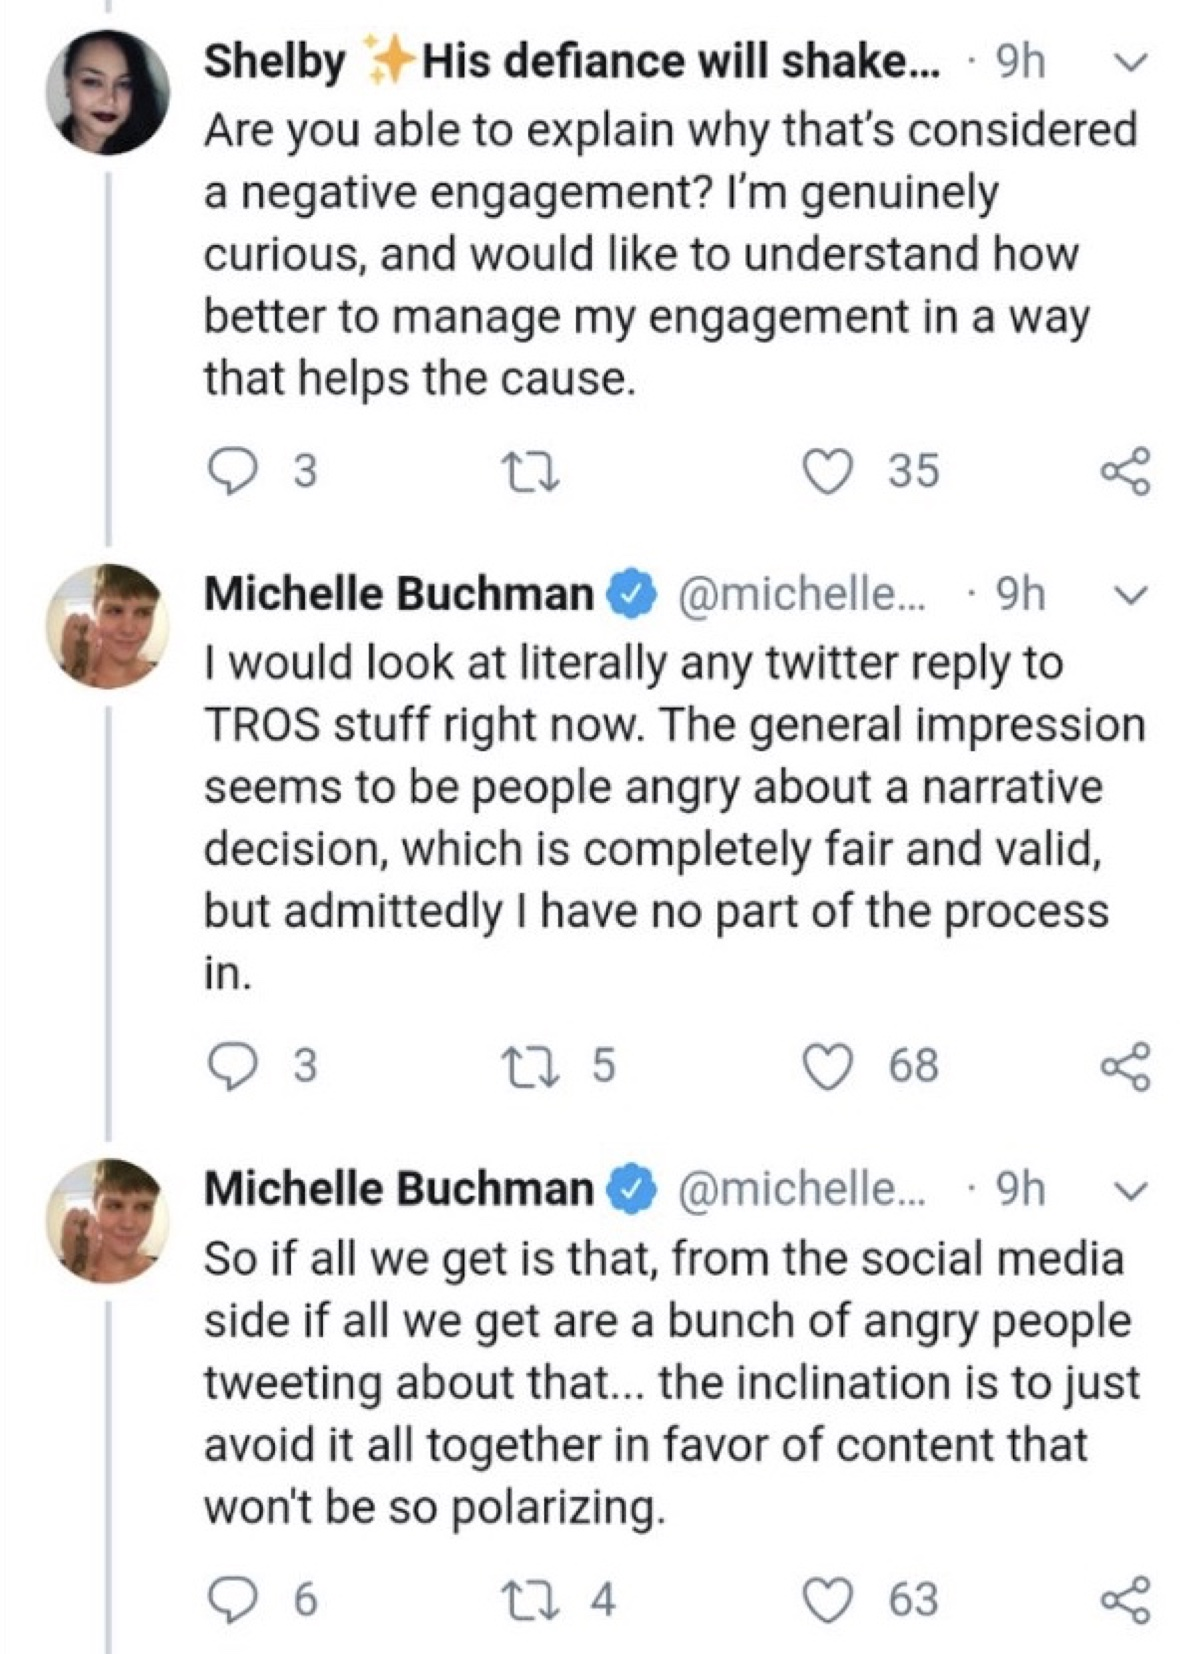 Buchman said the inclination is to avoid this type of content in favor of something less polarizing (Twitter - @saltandrockets)